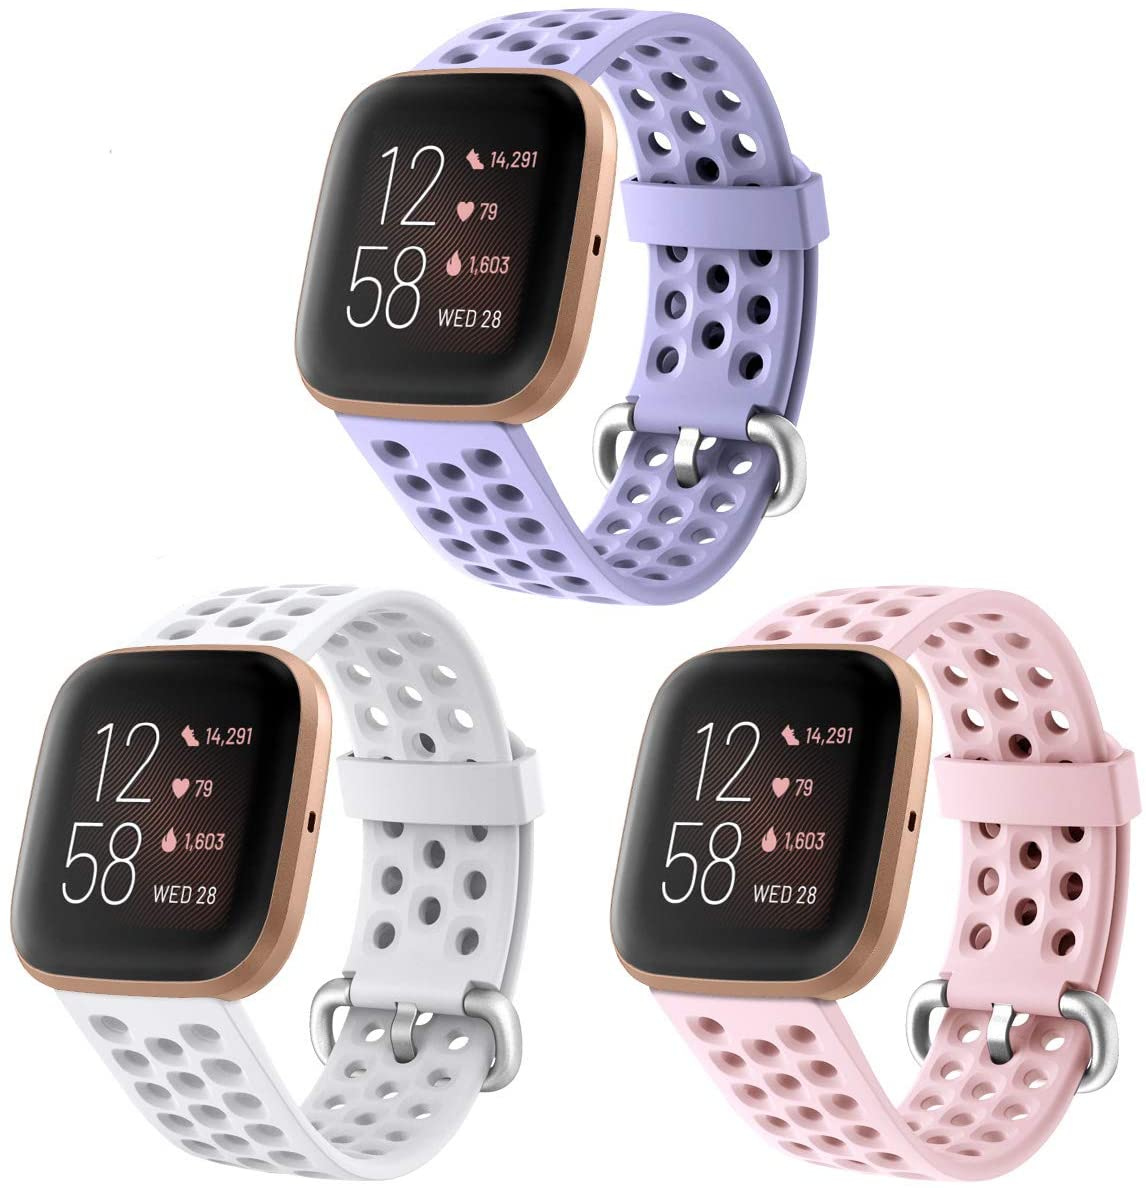 NANW 3-Pack Sport Bands Compatible with Fitbit Versa 2/Versa Lite/Versa for Women Men, Soft Waterproof Silicone Strap Replacement Wristband with Air Holes for Versa 2 Smartwatch